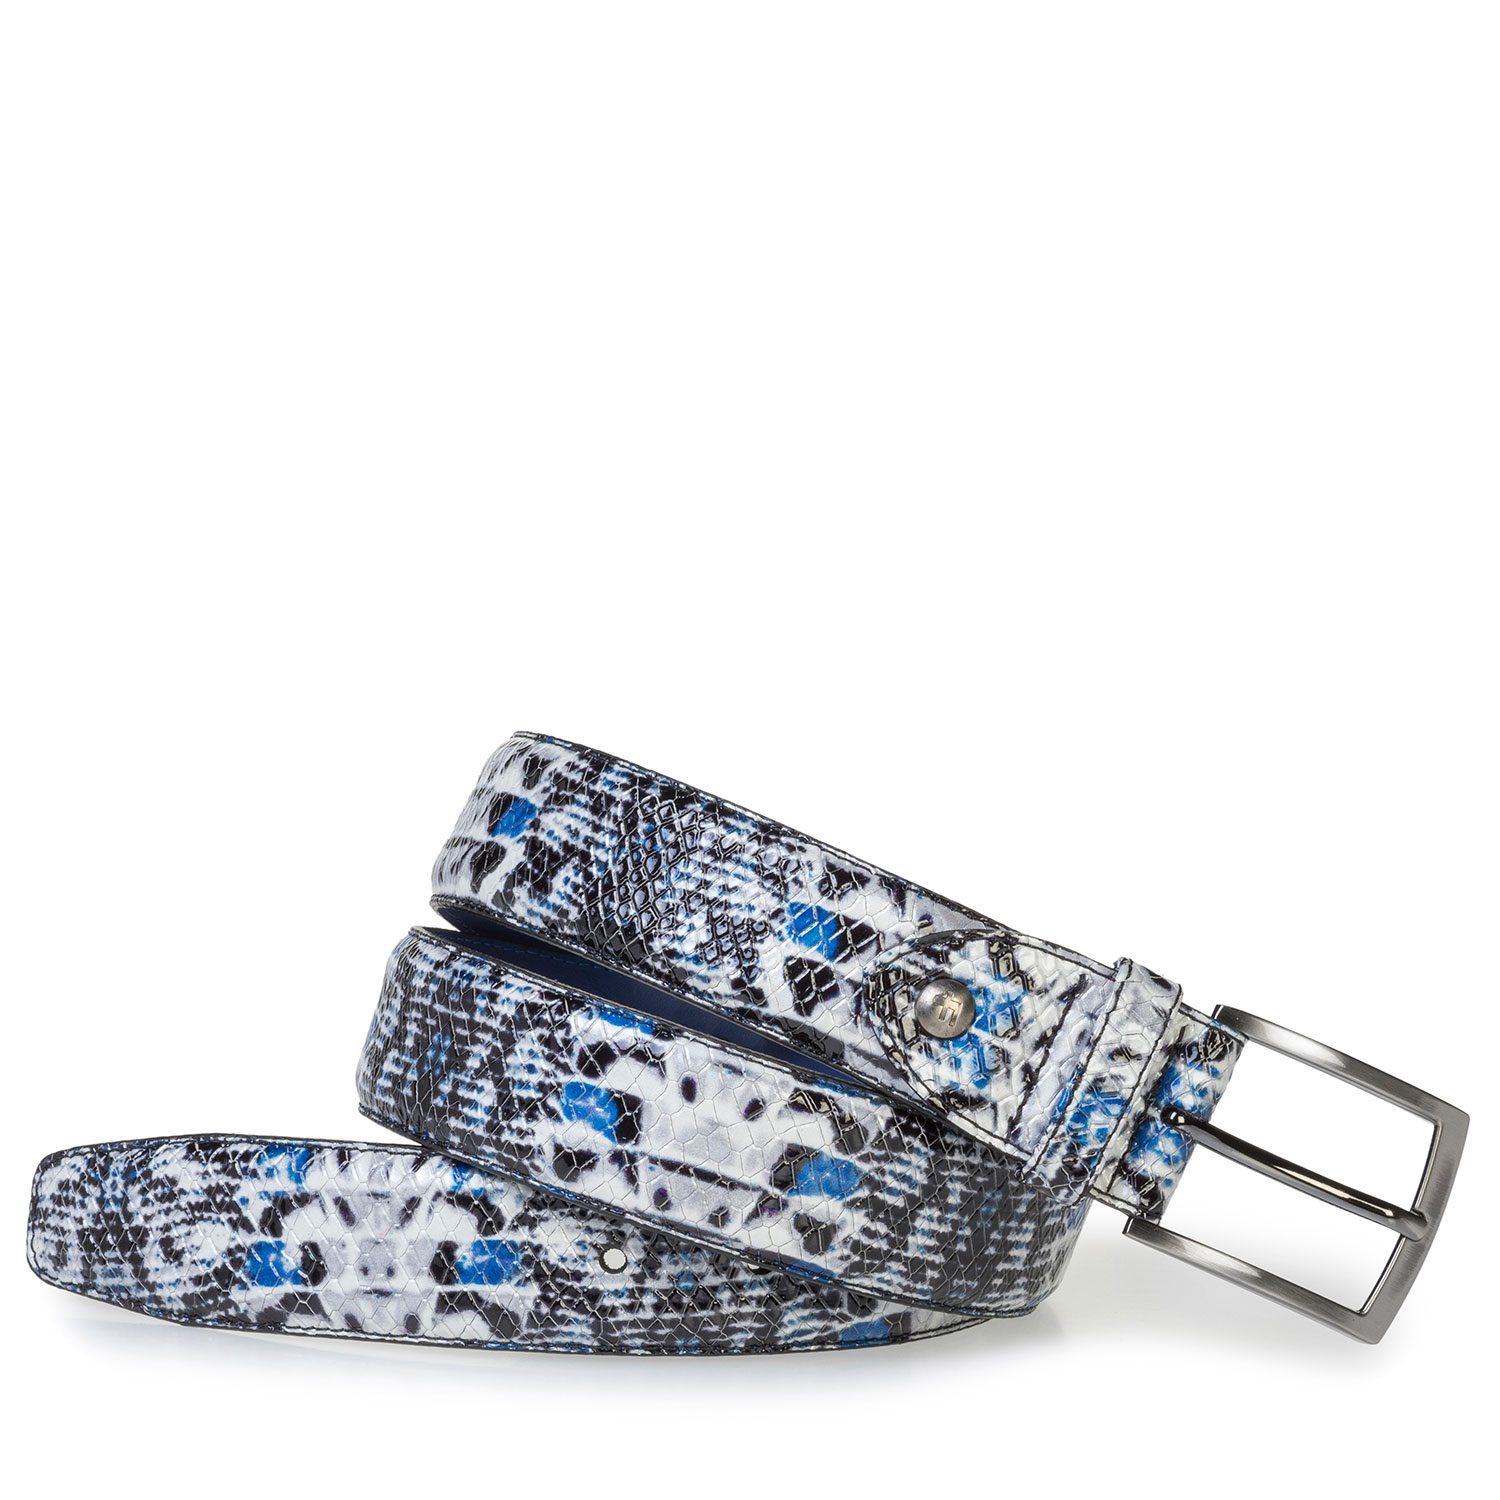 75201/59 - Blue patent leather belt with snake print